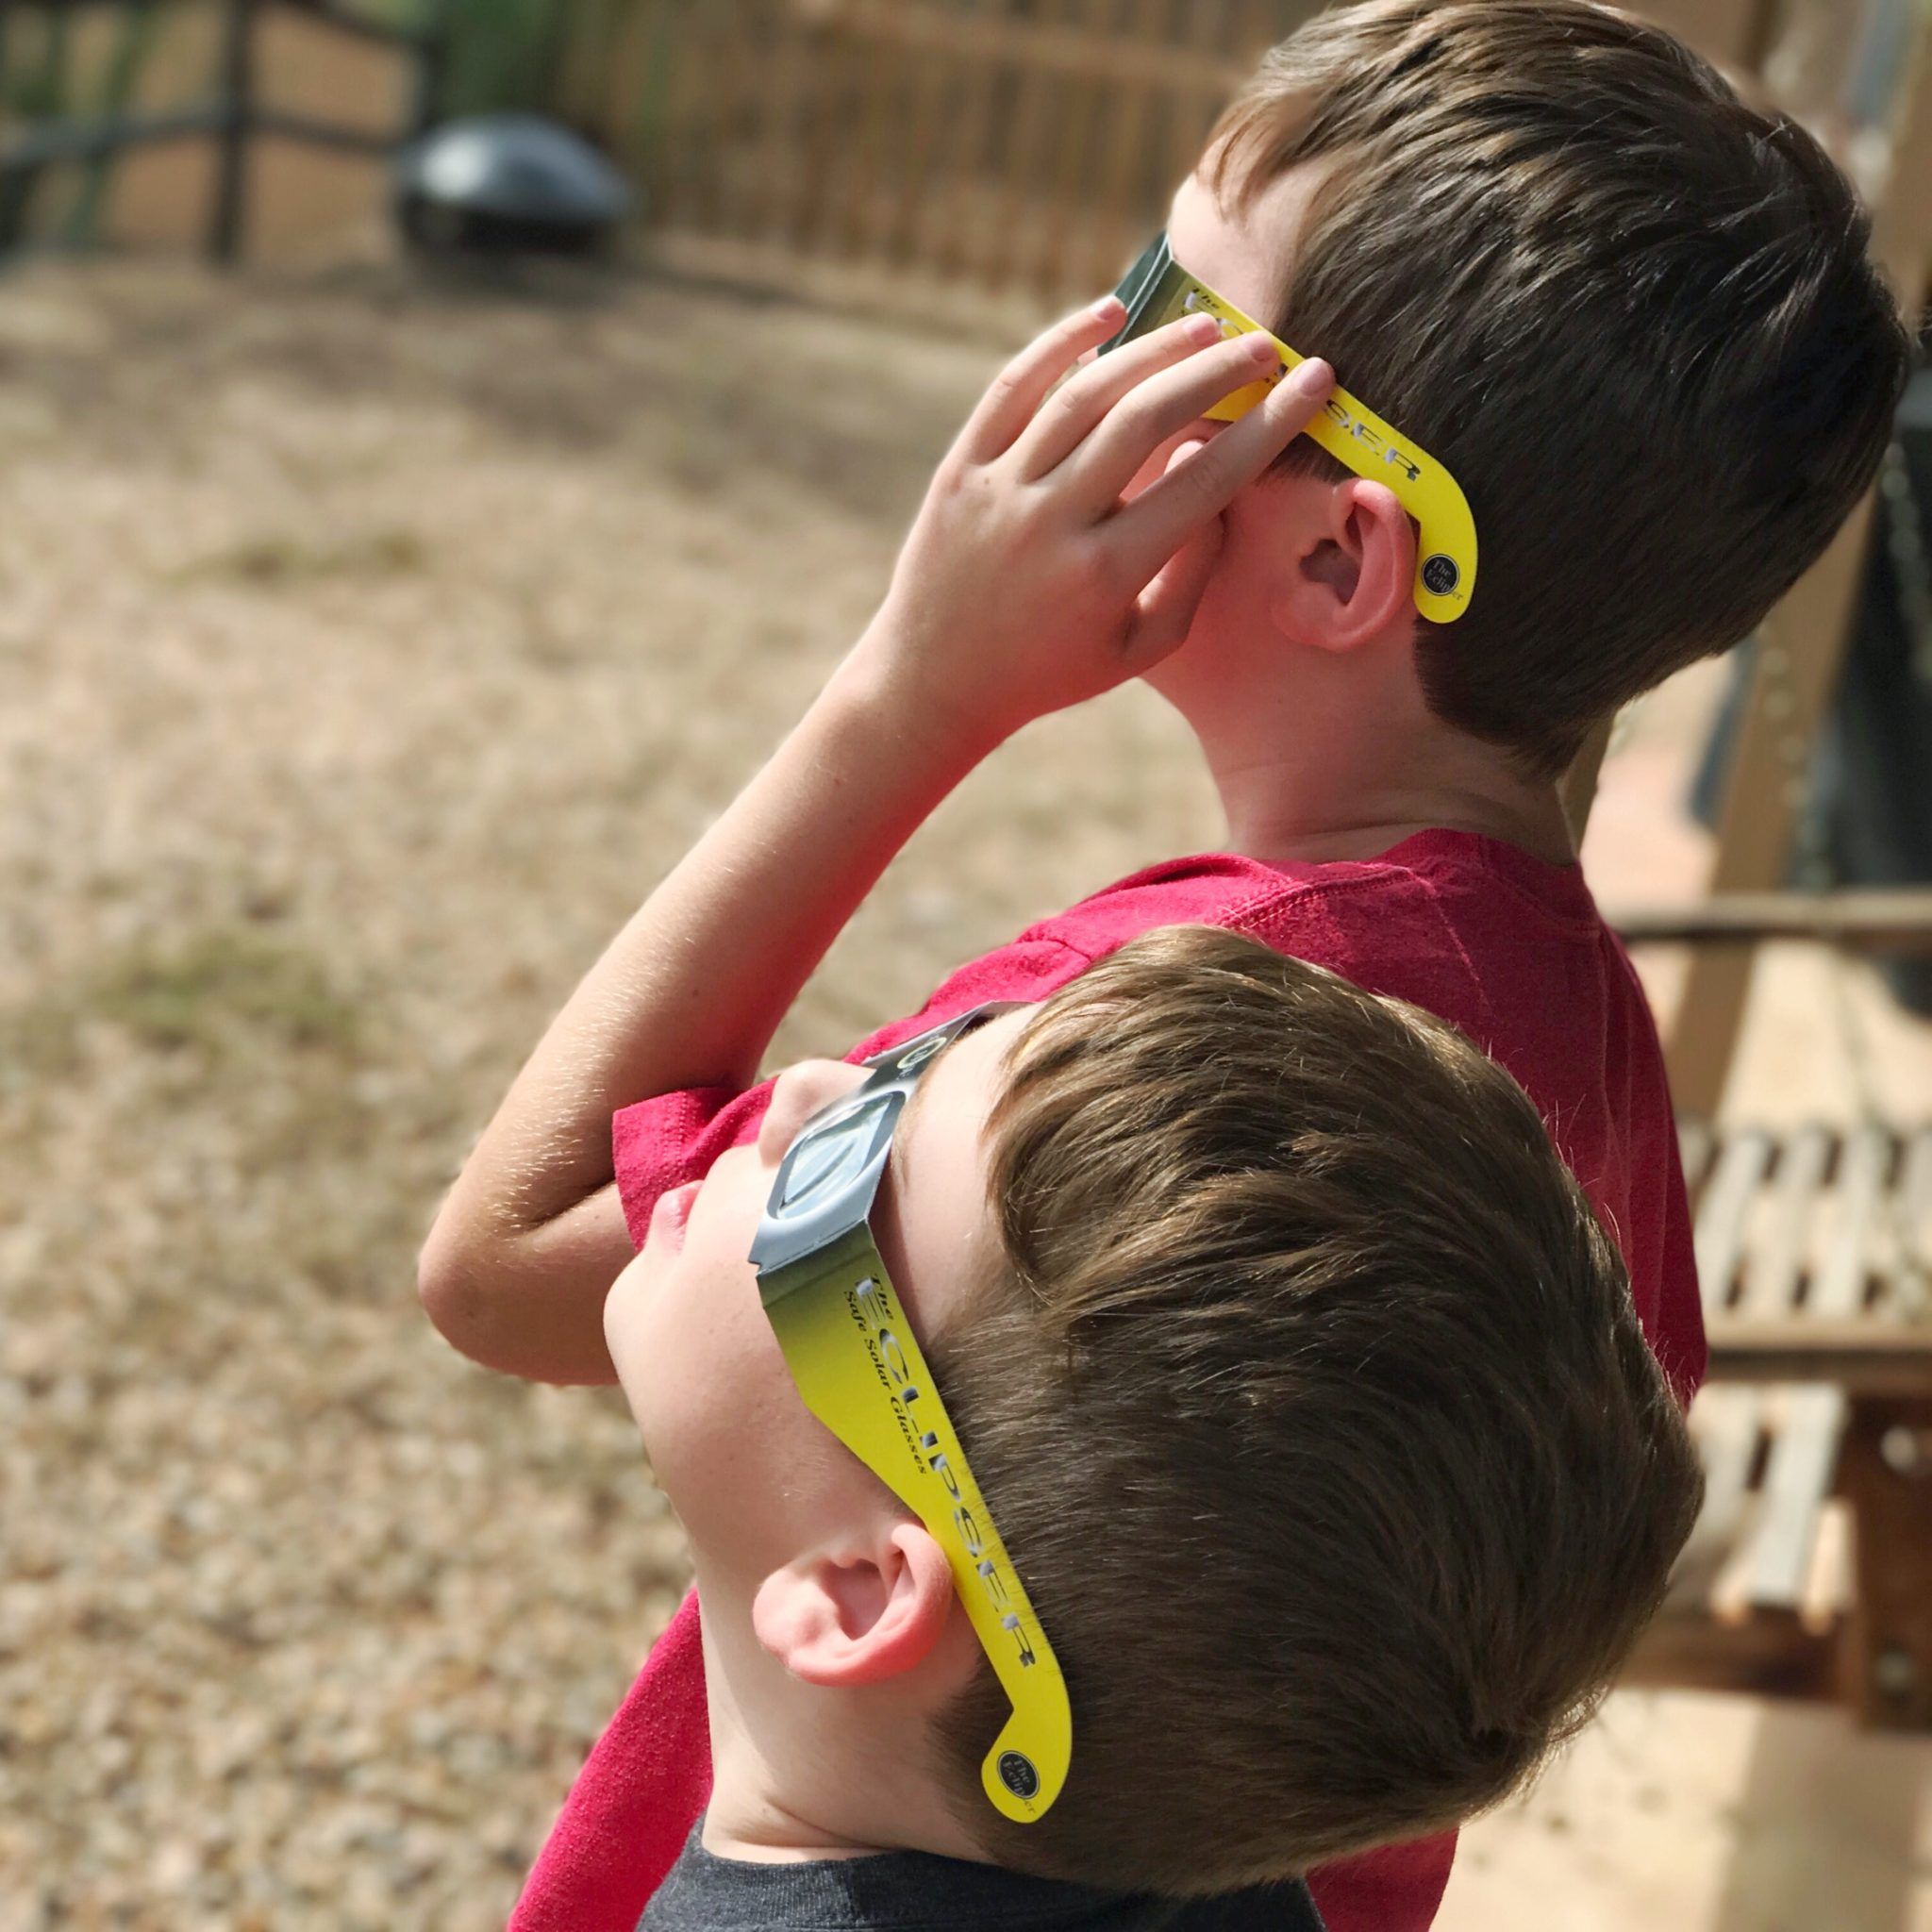 Prepping for Solar Eclipse with protective solar glasses